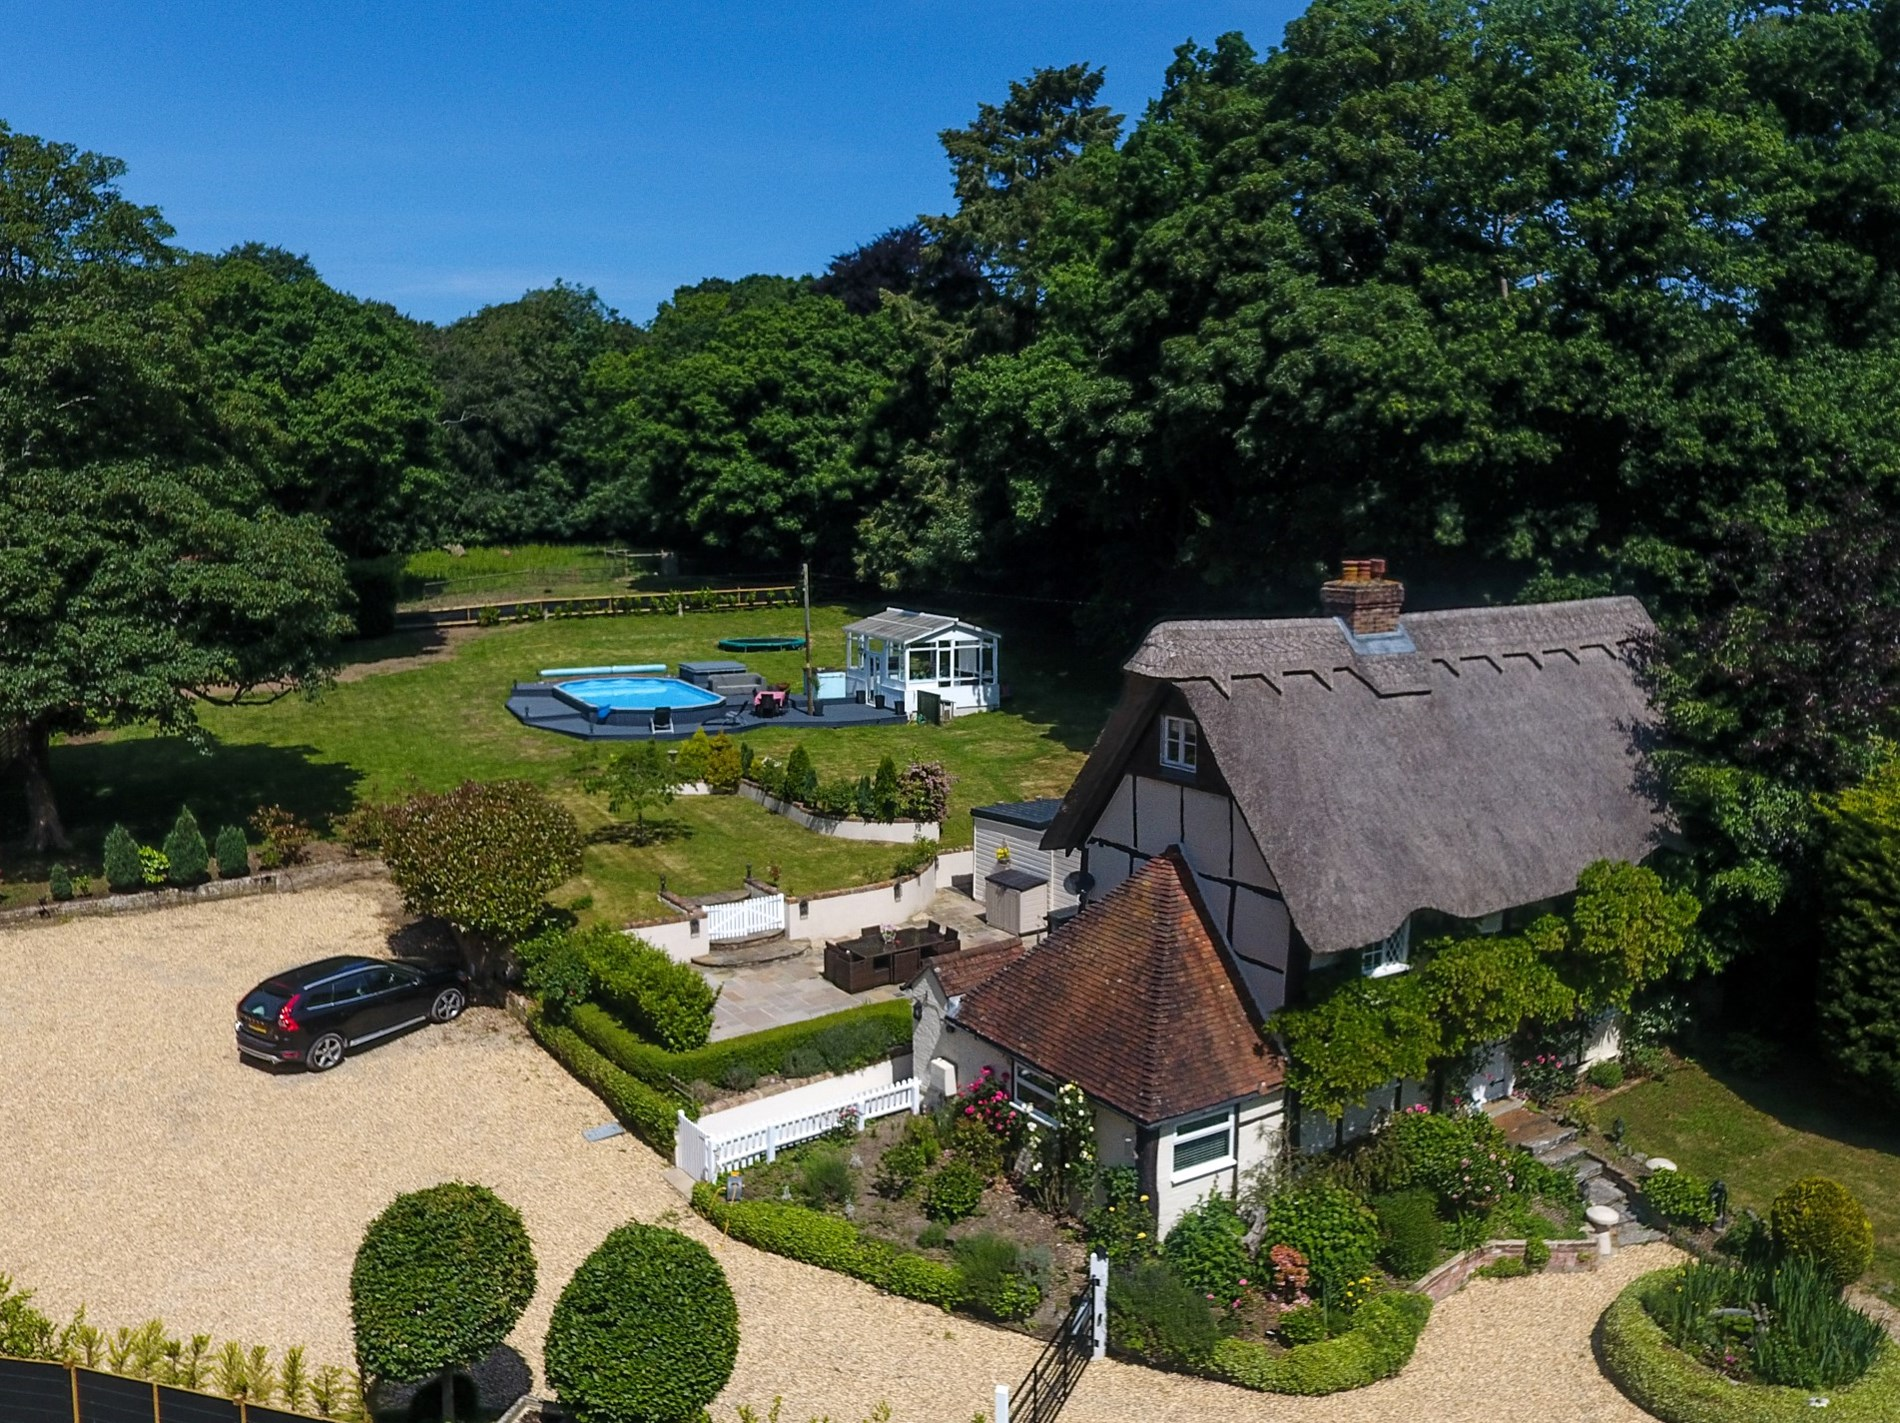 Aerial view of the cottage, pool and grounds